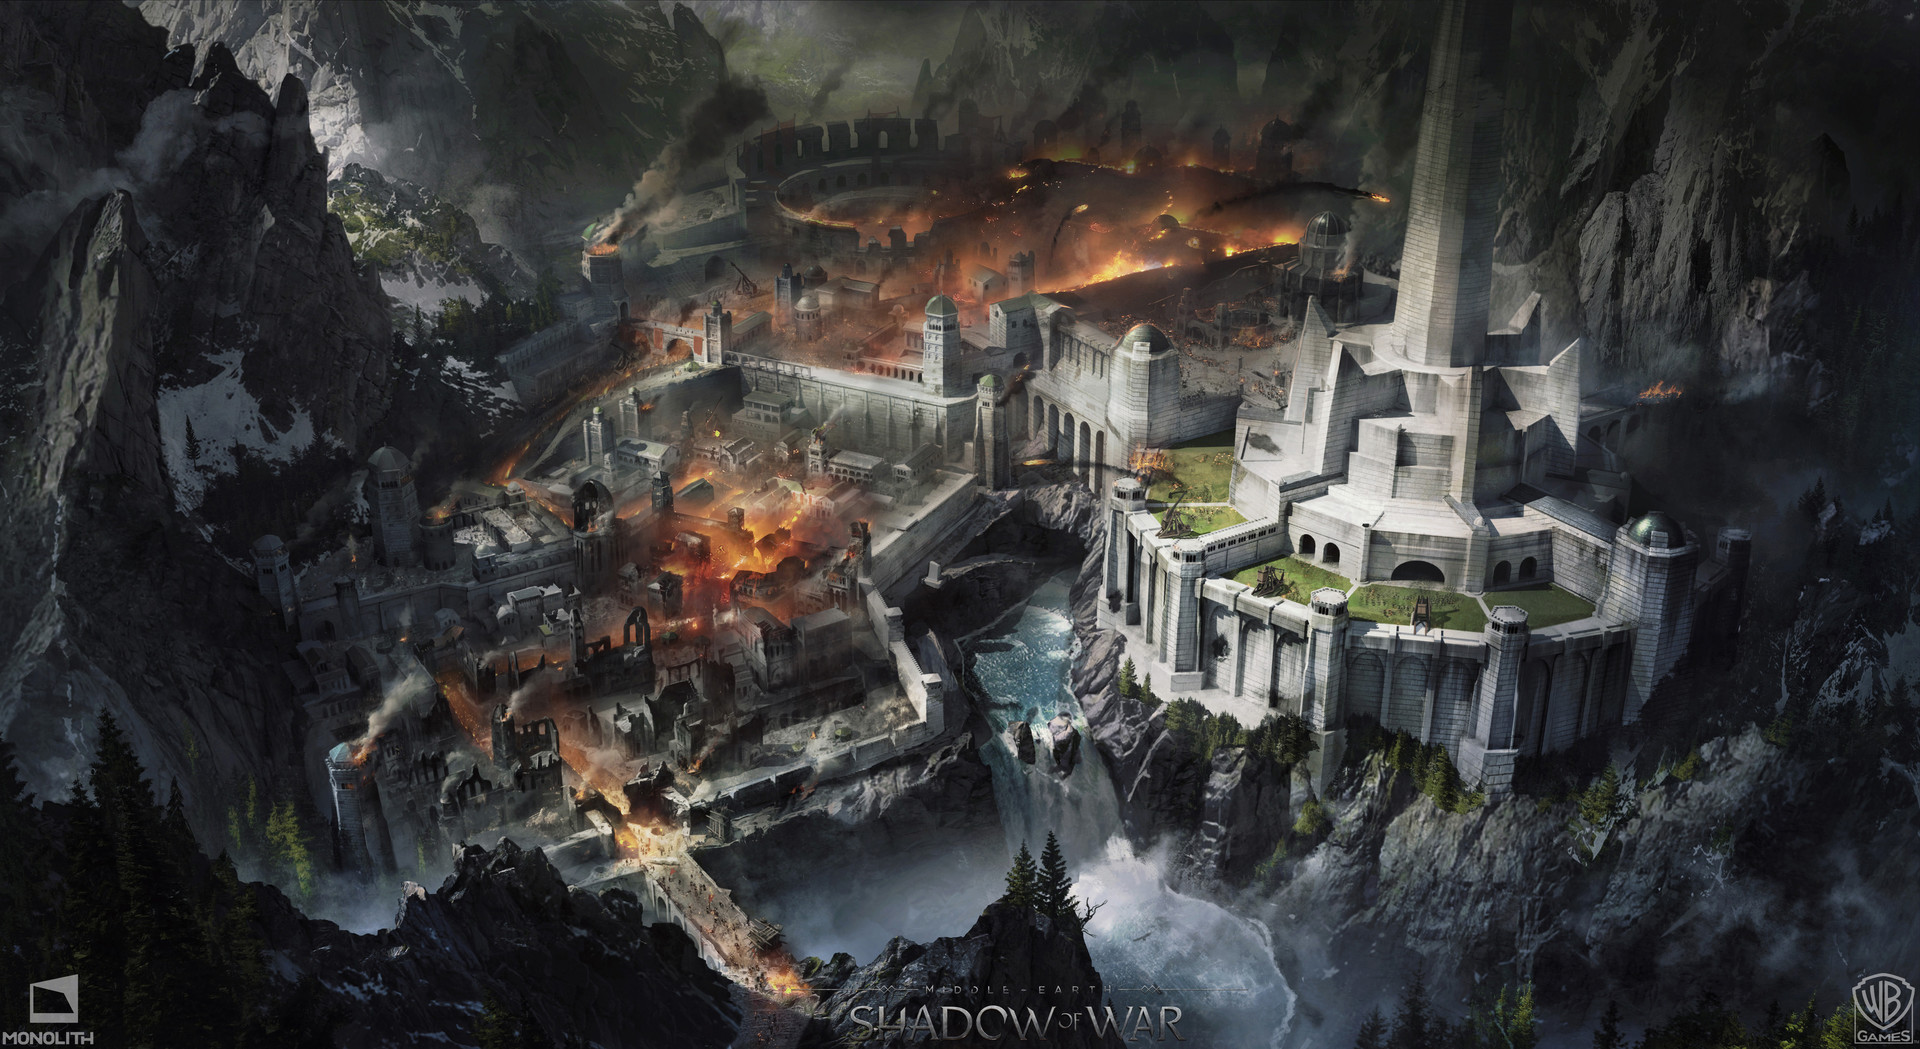 Middle Earth Shadow Of War Wallpaper: Middle-earth: Shadow Of War Wallpaper And Background Image